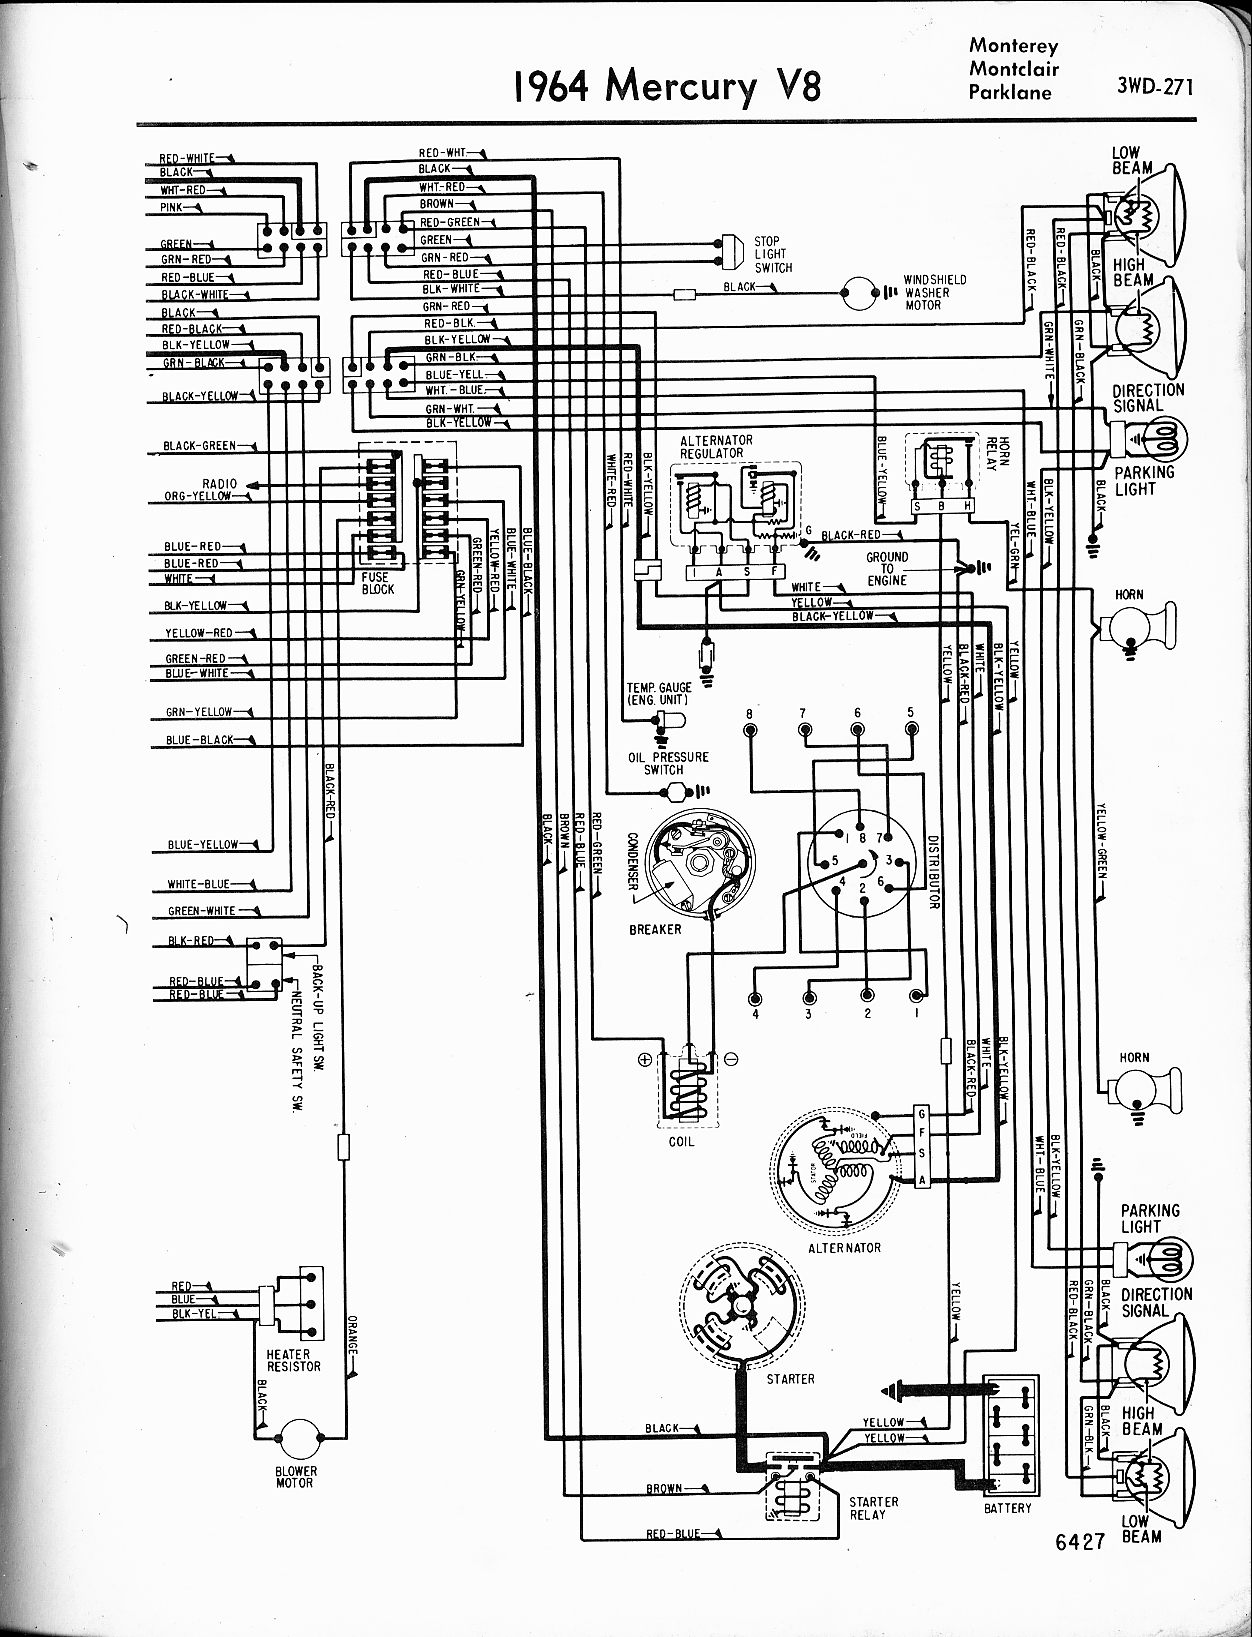 64 Cadillac Fuse Box Great Installation Of Wiring Diagram 2002 Escalade 1964 Diagrams Rh 50 Jennifer Retzke De Chevy 2008